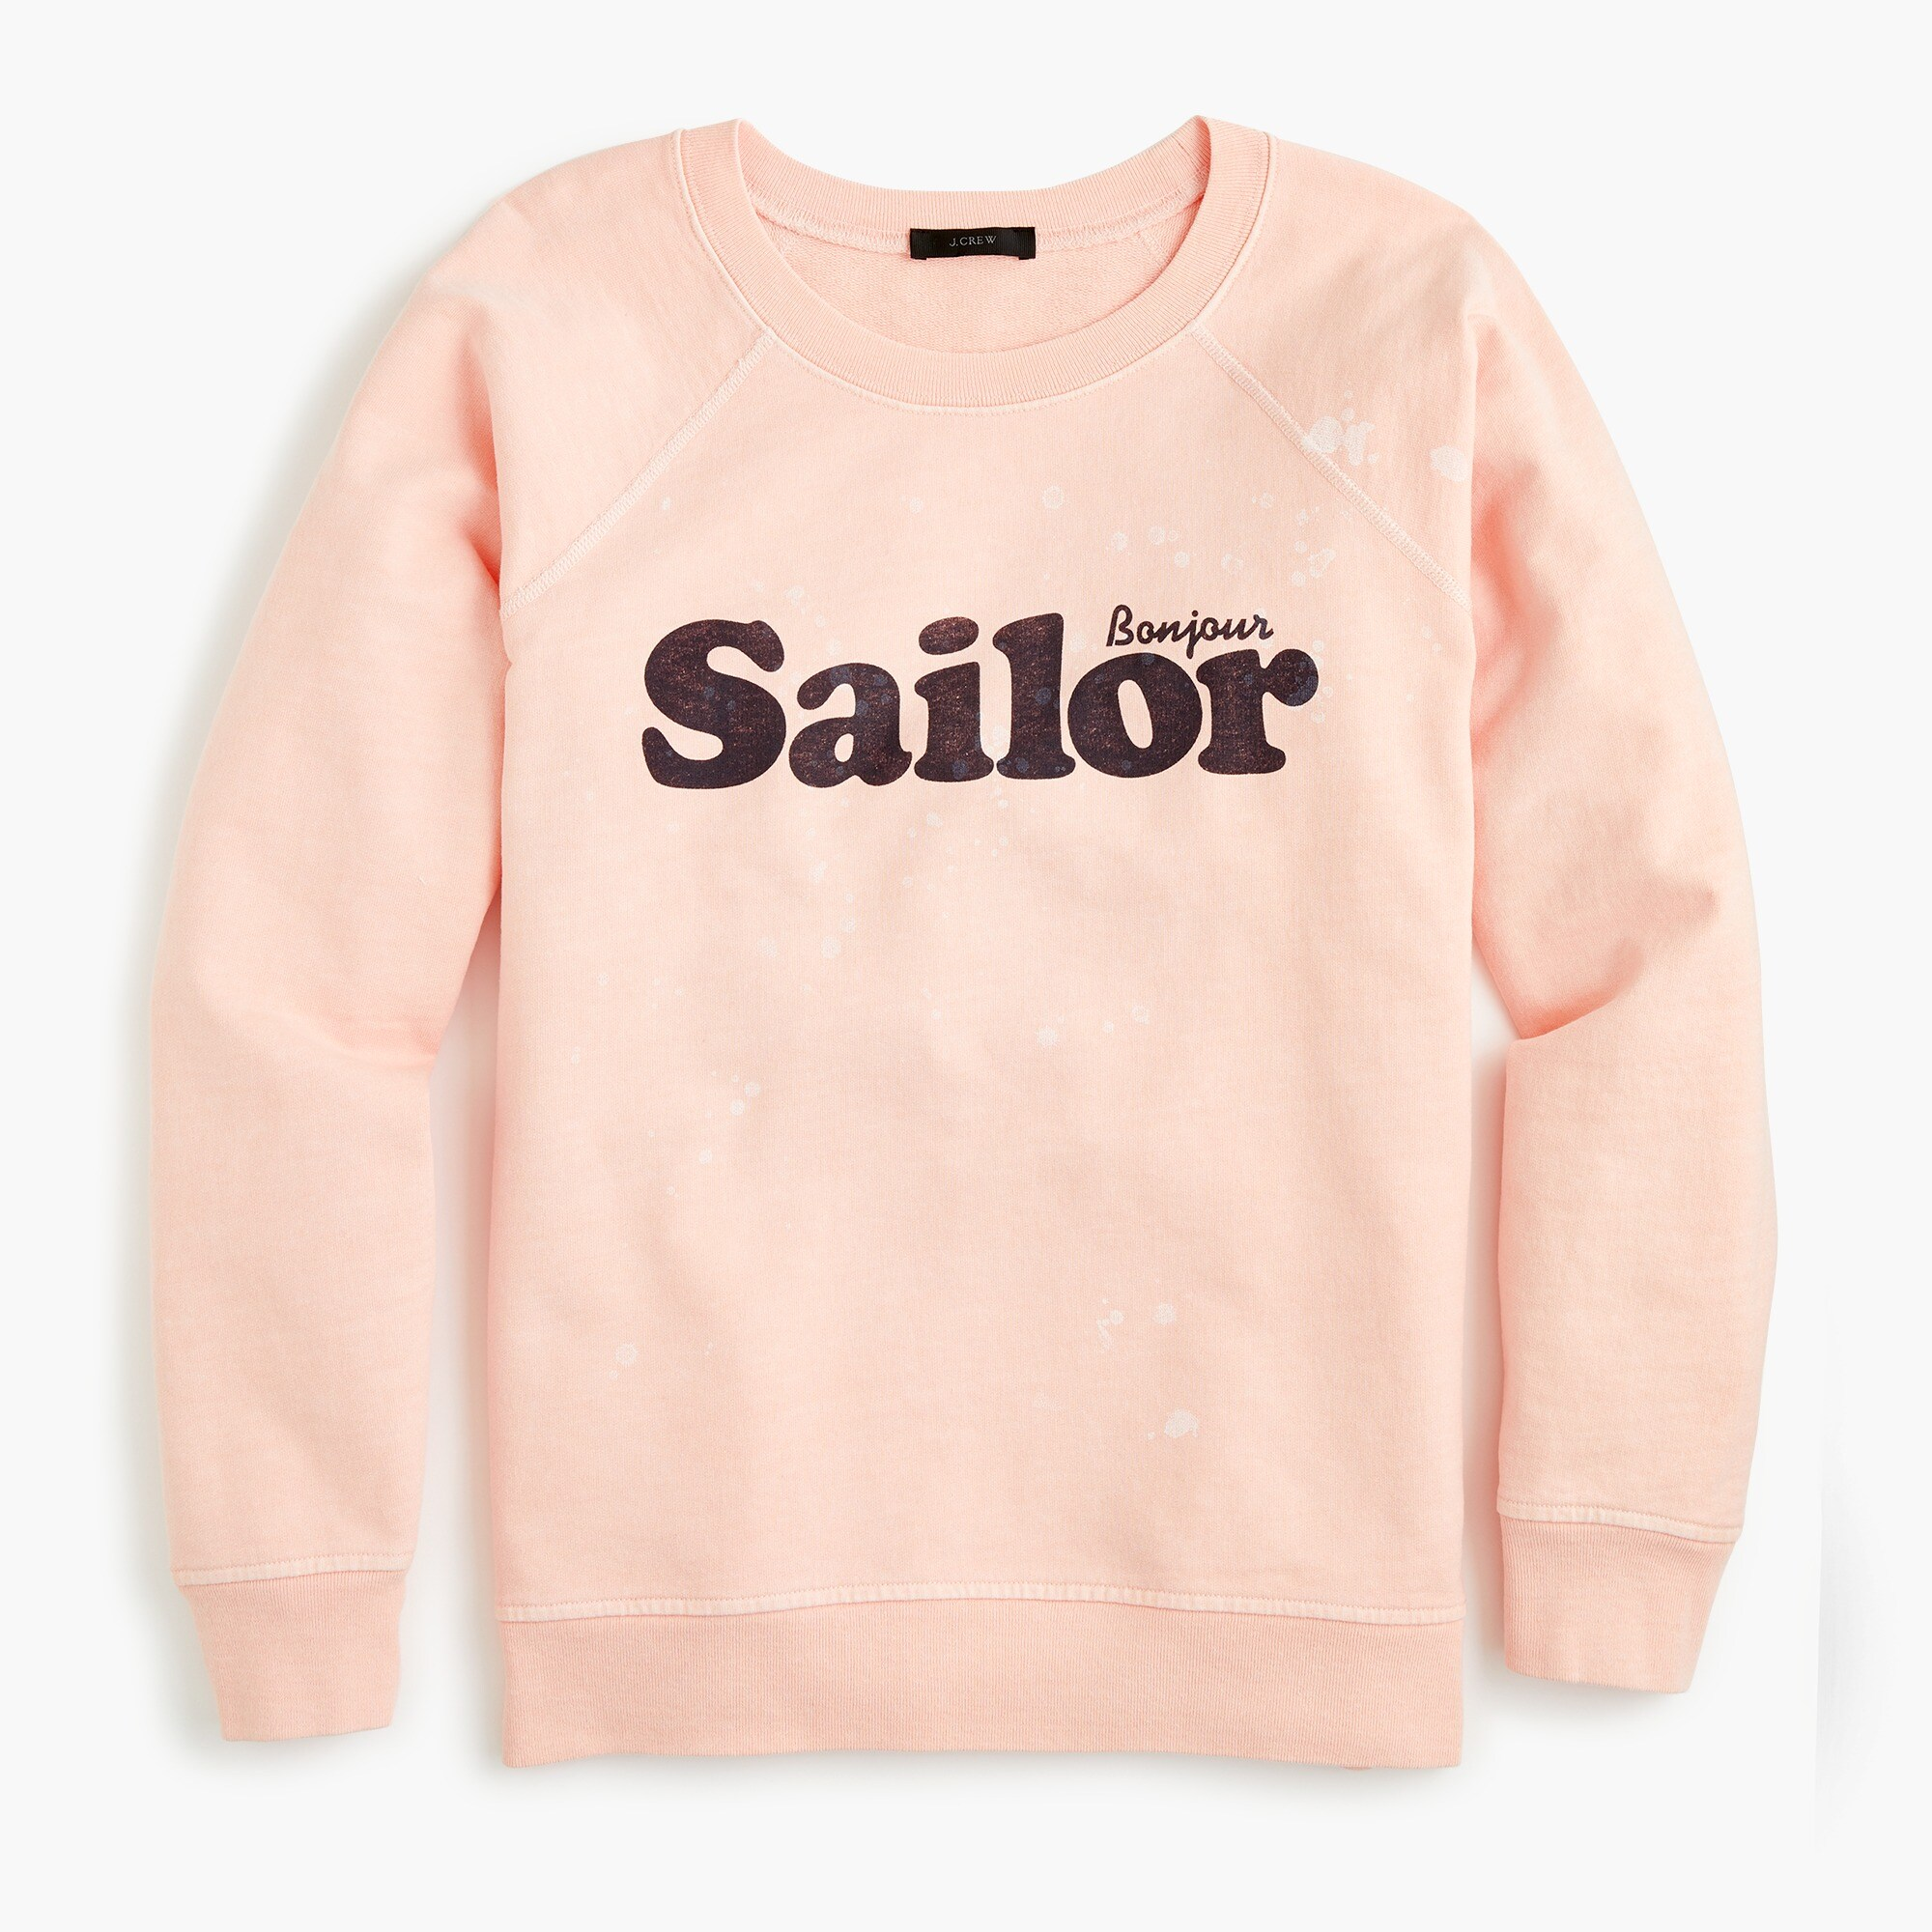 women's sailor sweatshirt - women's knits